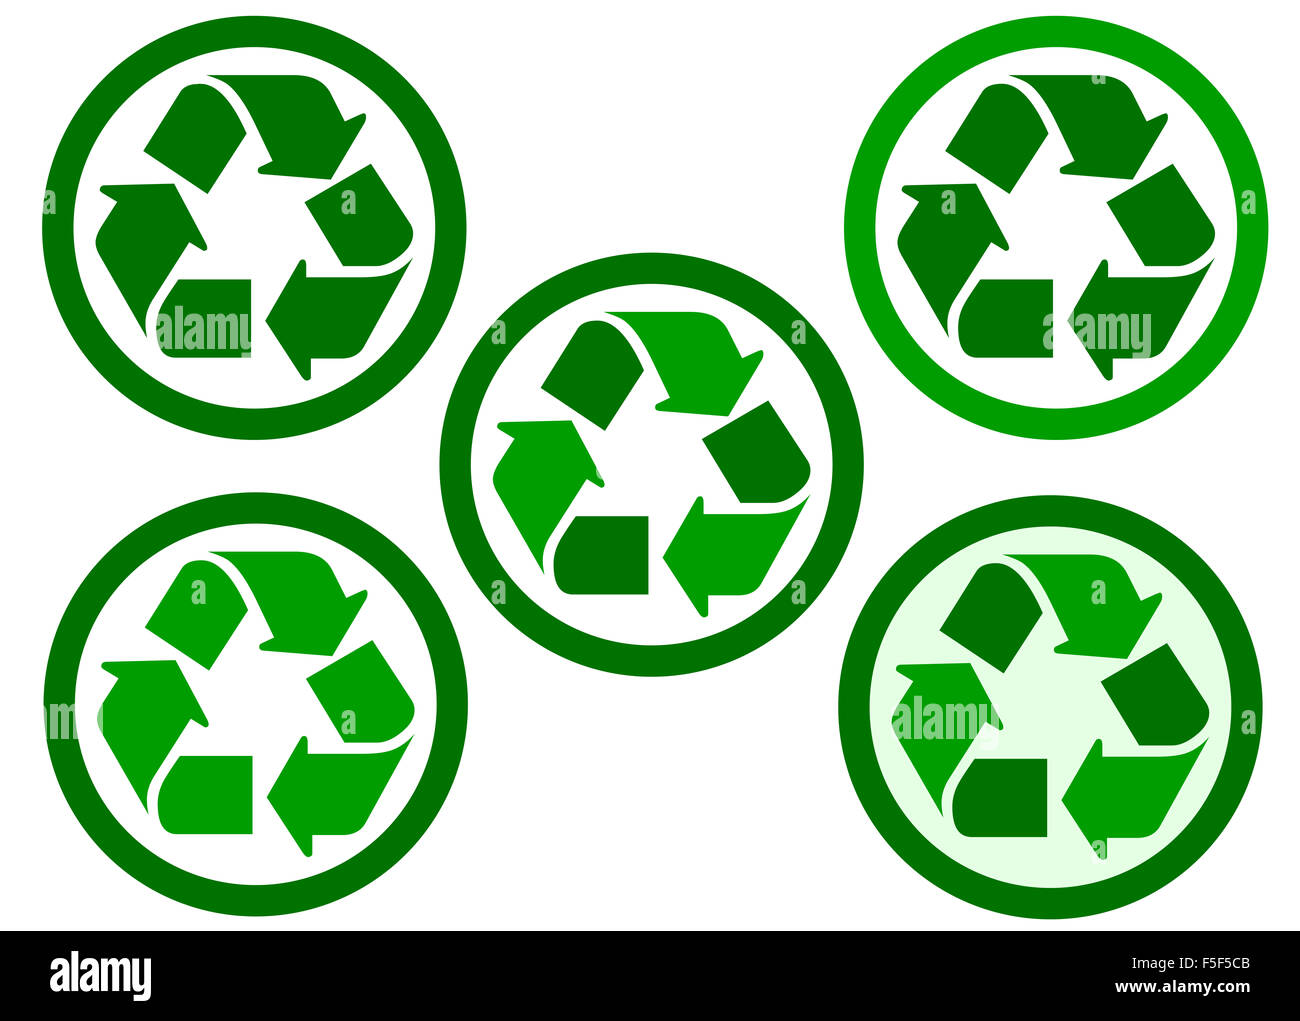 recyclable and recycling icon - Stock Image